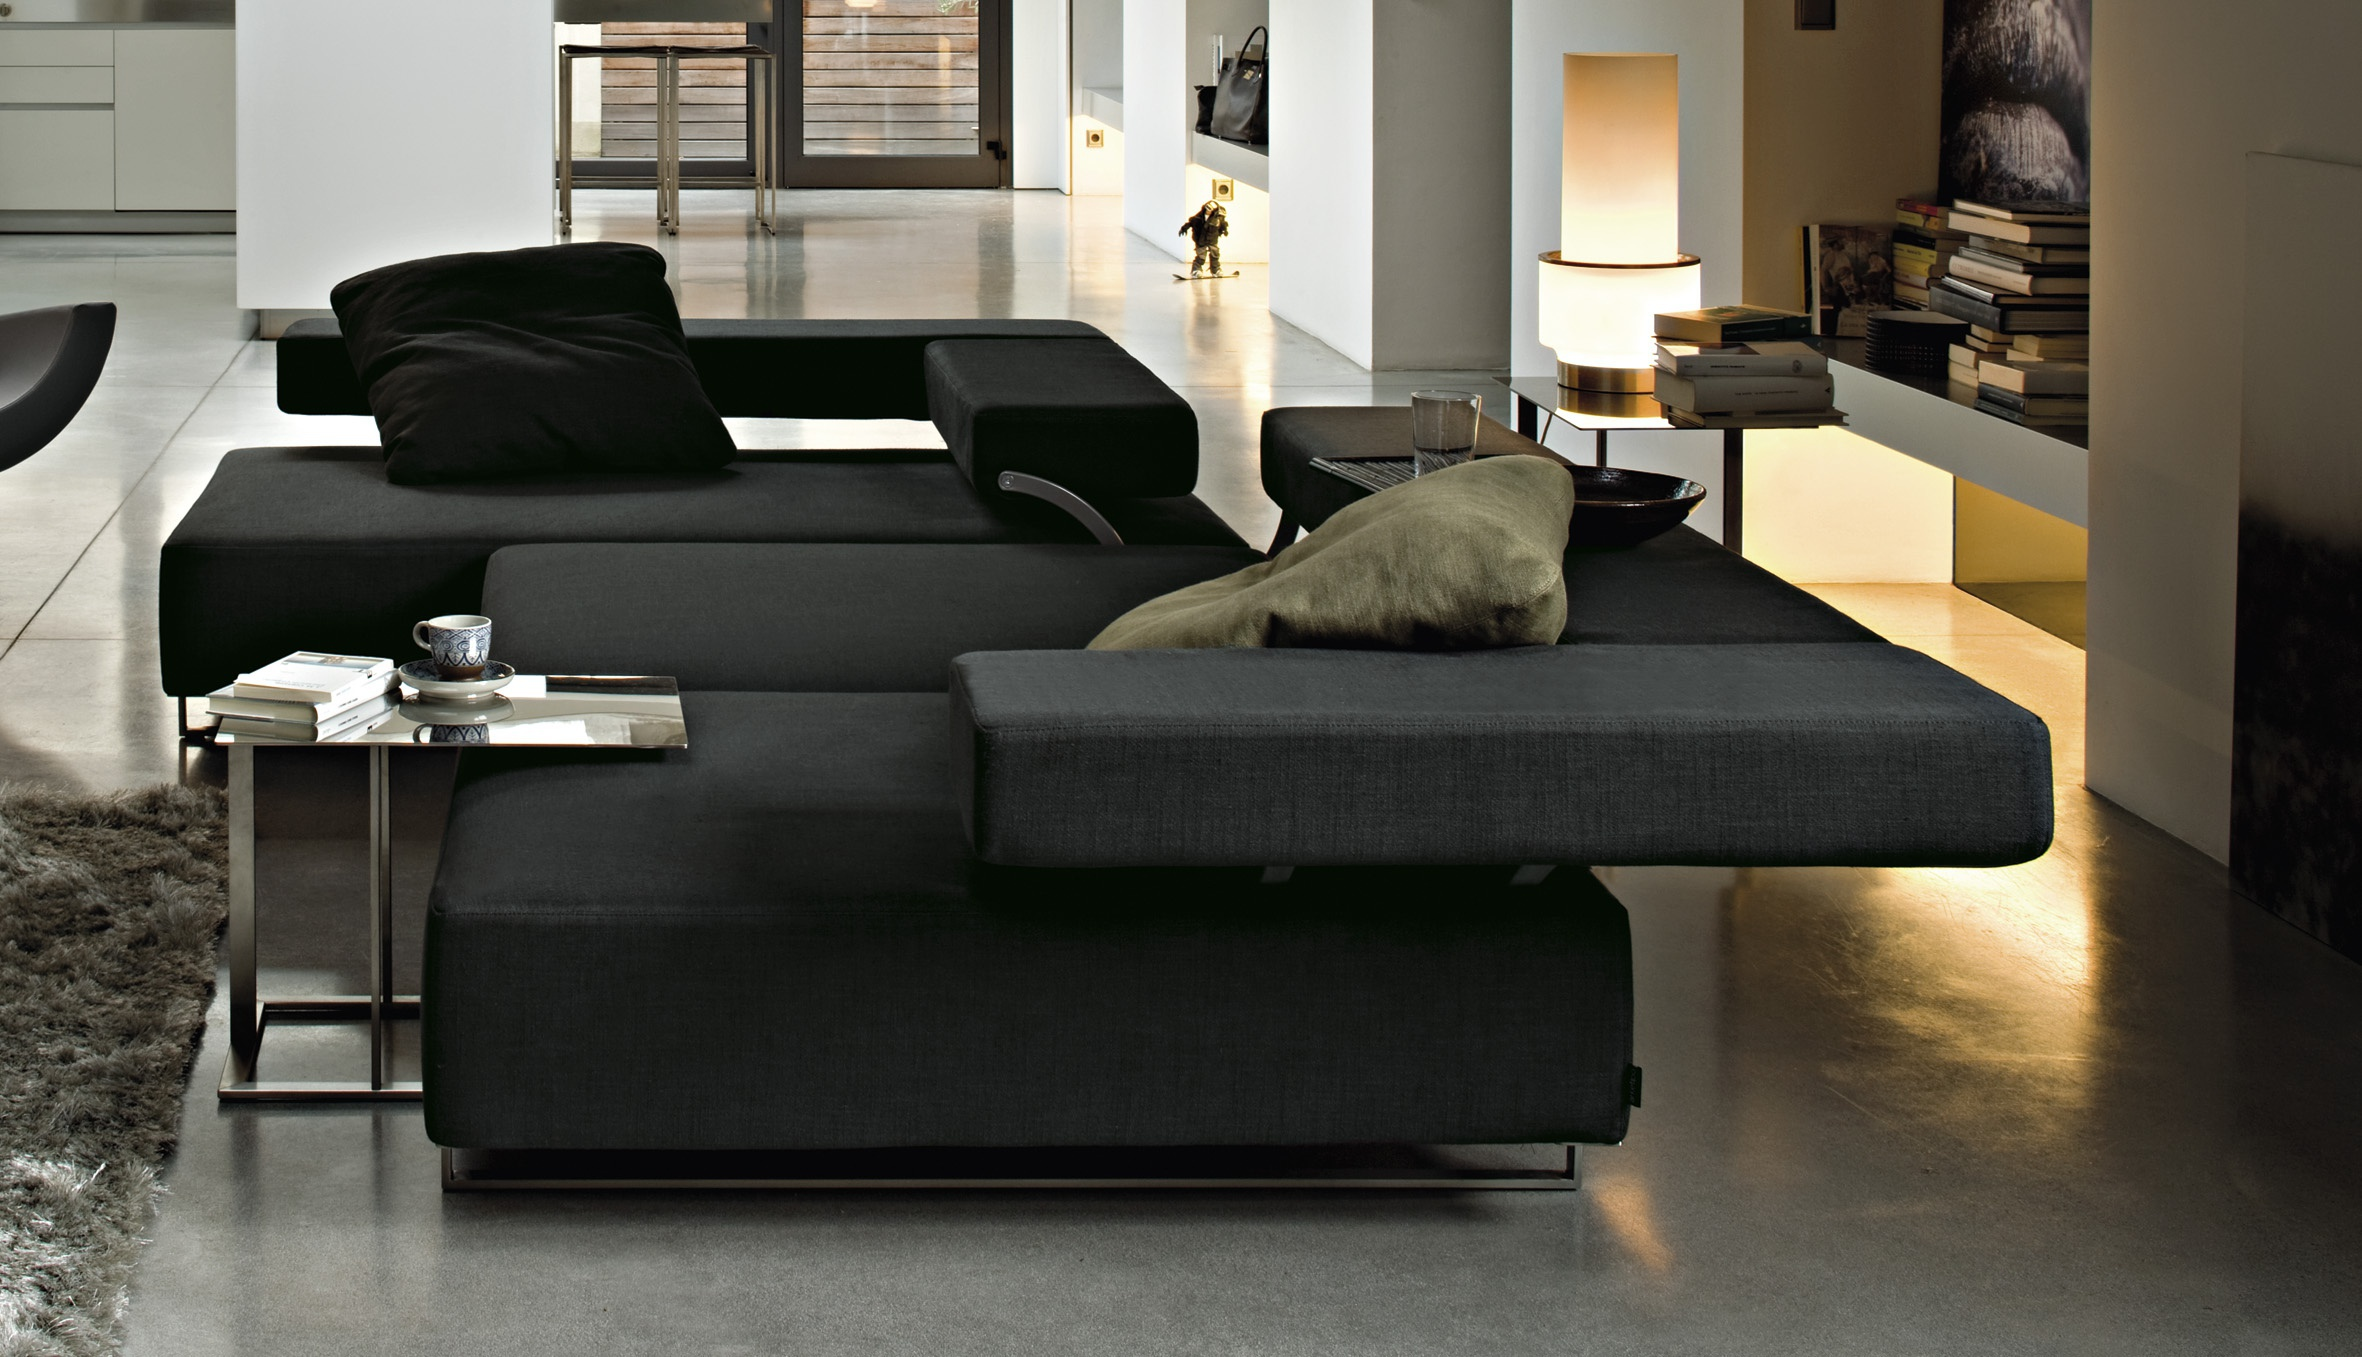 The modular sofa loft arketipo luxury furniture mr - Joop loft sofa ...